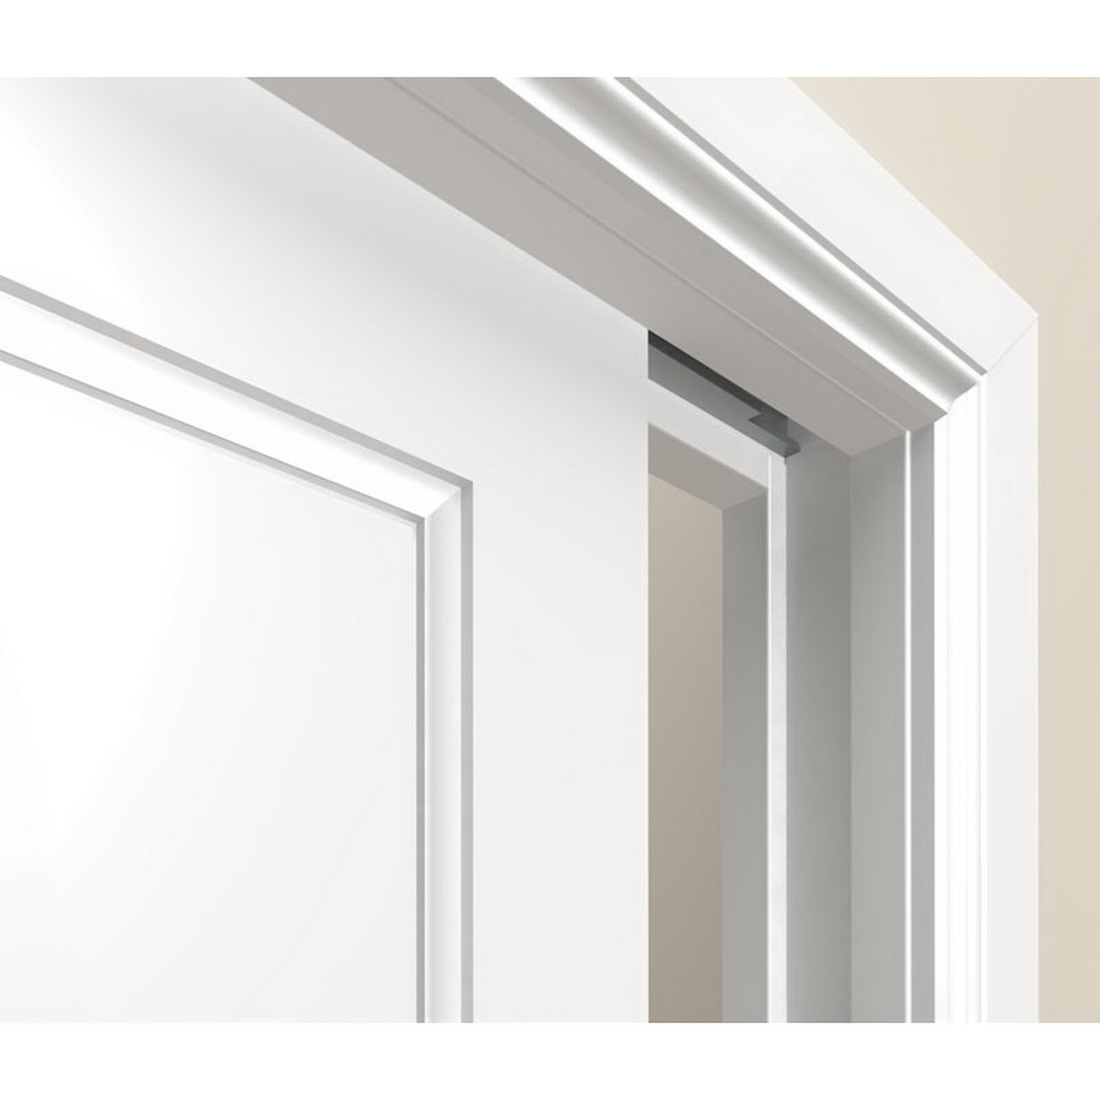 Cavity Slider SofStop Timber Flat Combo Architrave Jamb 1980 x 710 x 10 mm Clear Pine STSPA.710CL200KIT